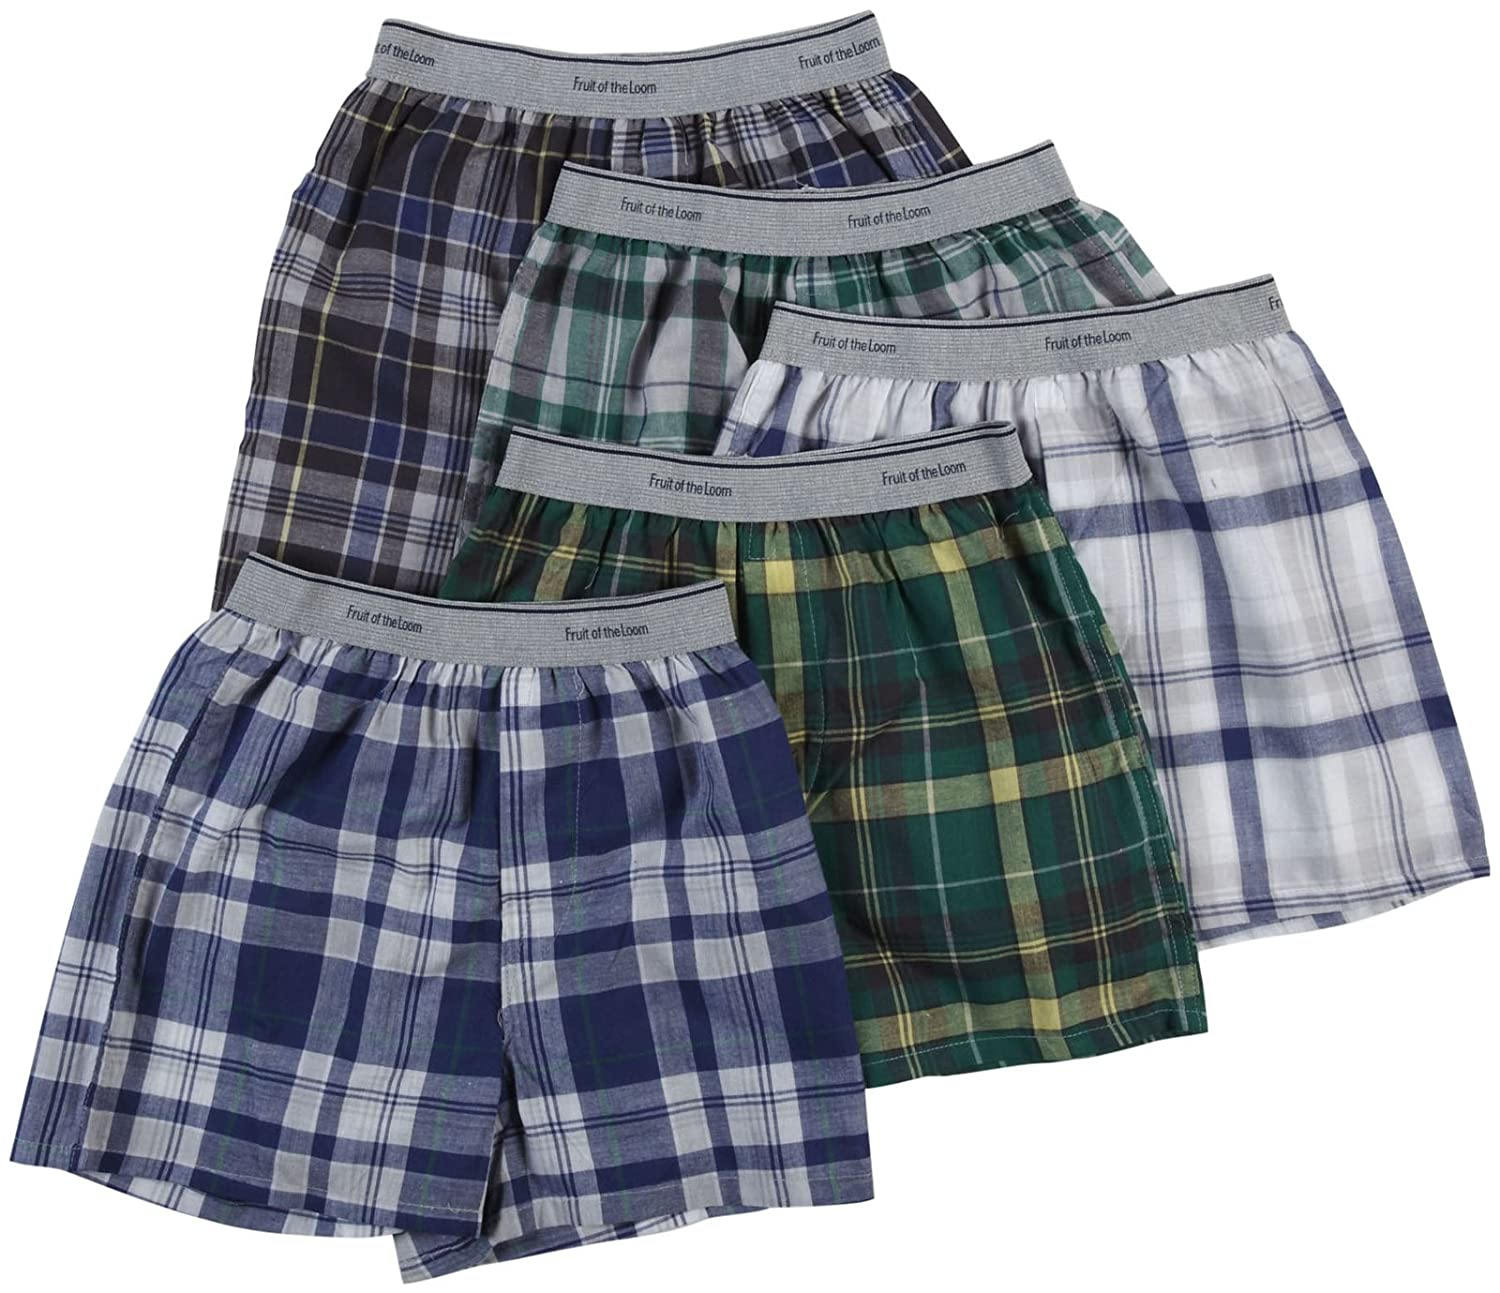 Fruit of the Loom Baby Boys' Woven Boxers - Fashion Waistband, 5 pk